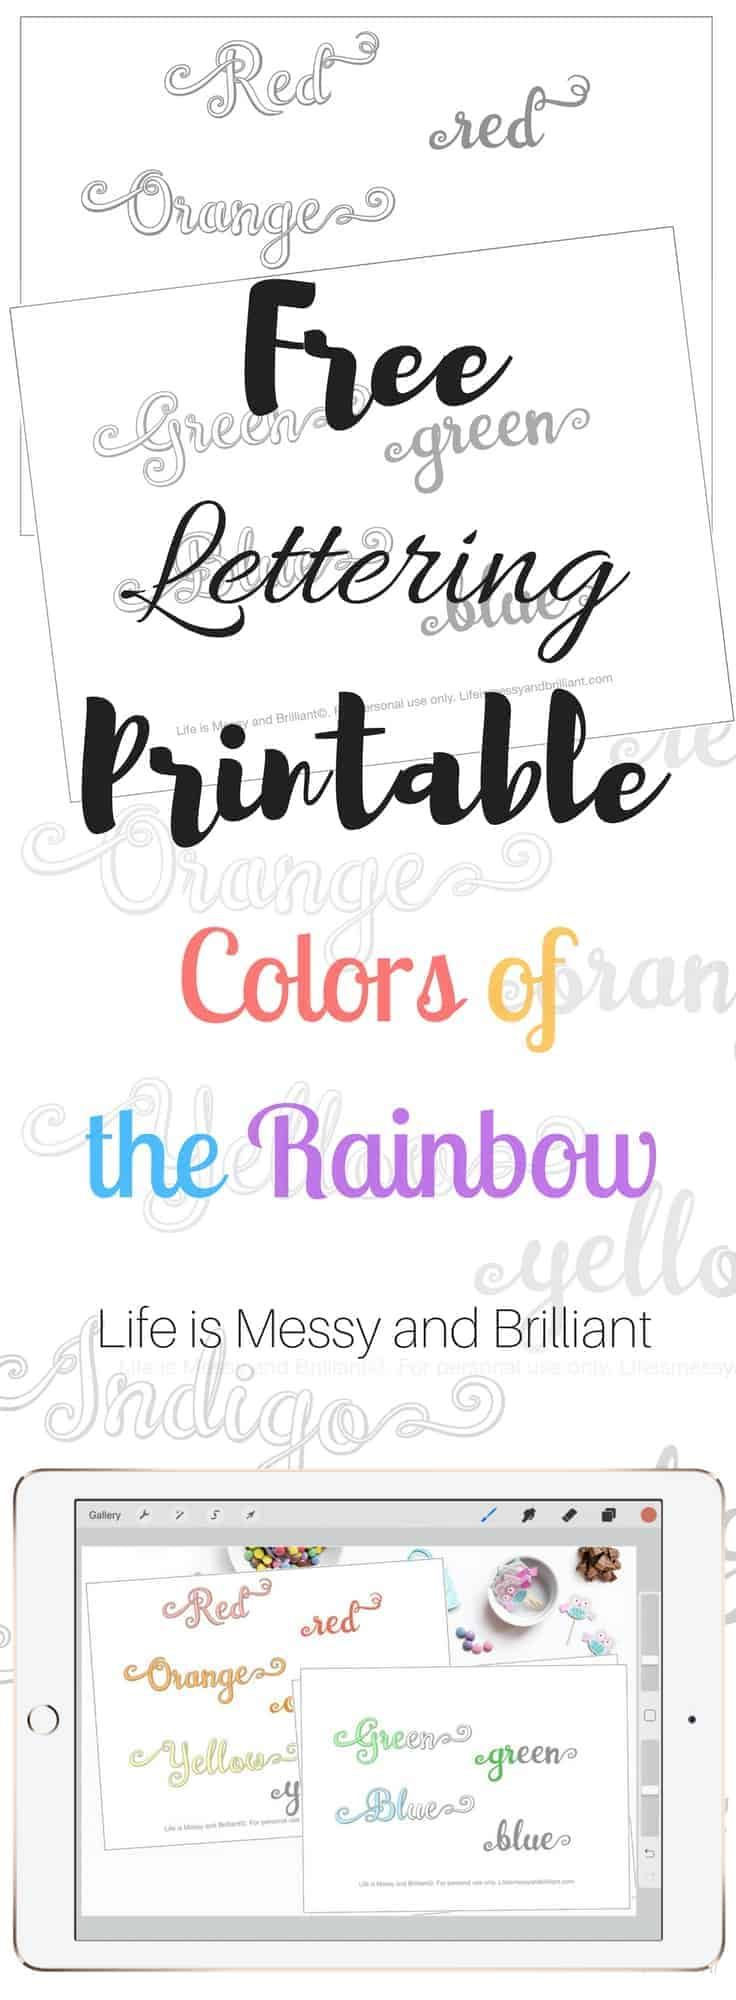 Free Colors Of The Rainbow Hand Lettering Practice Worksheets Lettering Practice Hand Lettering Practice Lettering [ 2000 x 736 Pixel ]